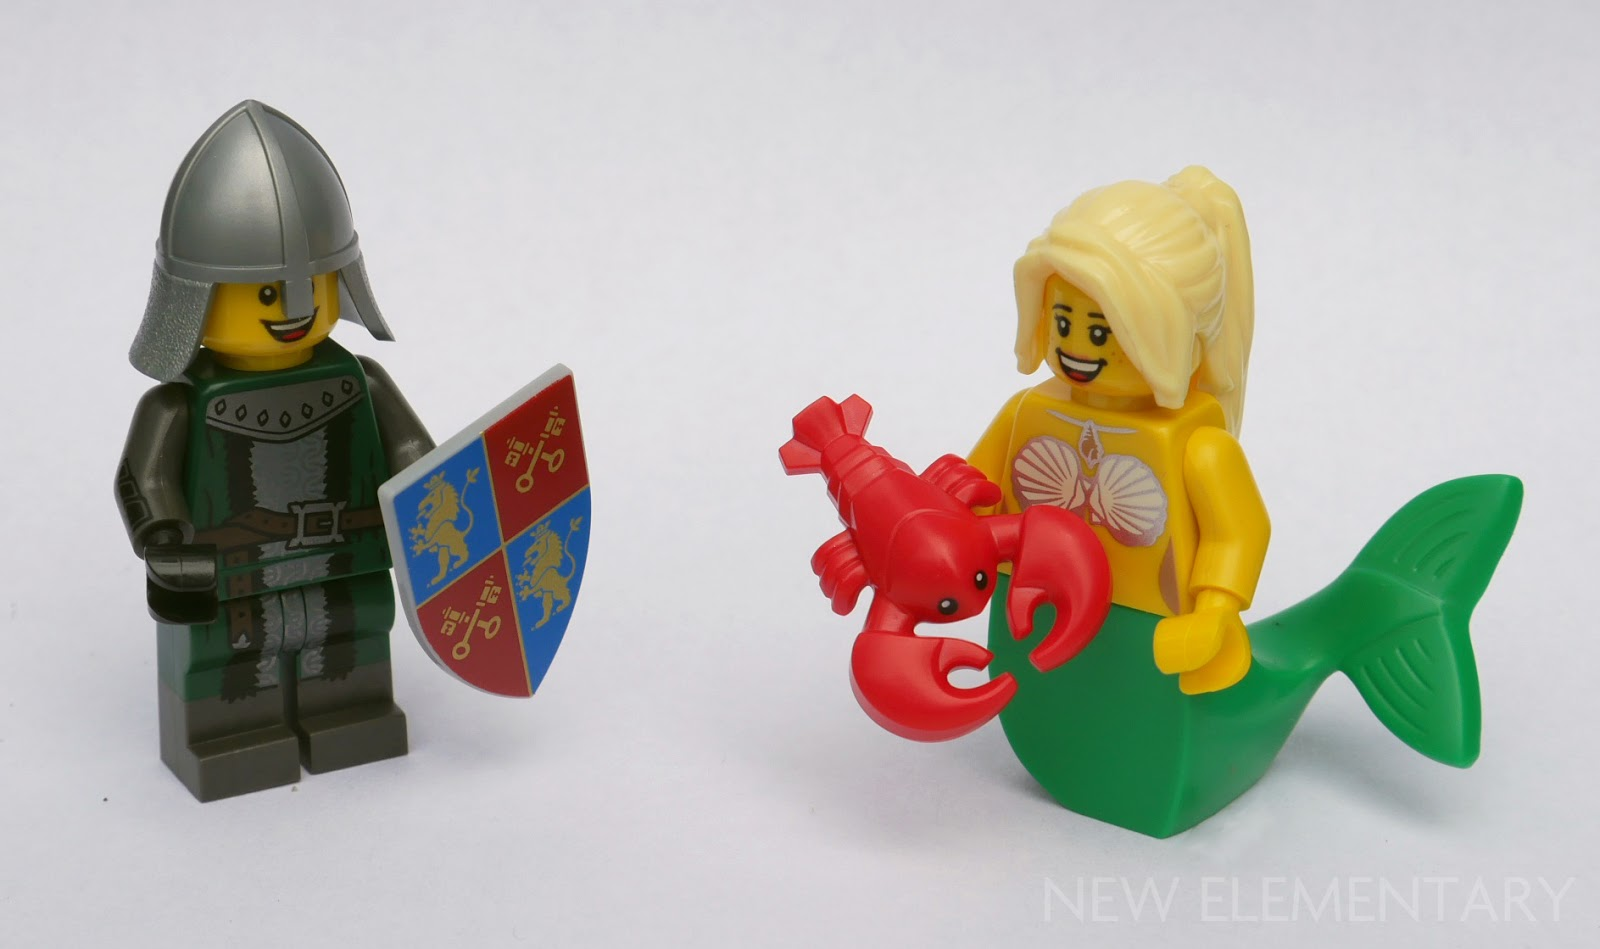 Minifig LEGO Castle Shield Ovoid with Dragon Green and Red Pattern